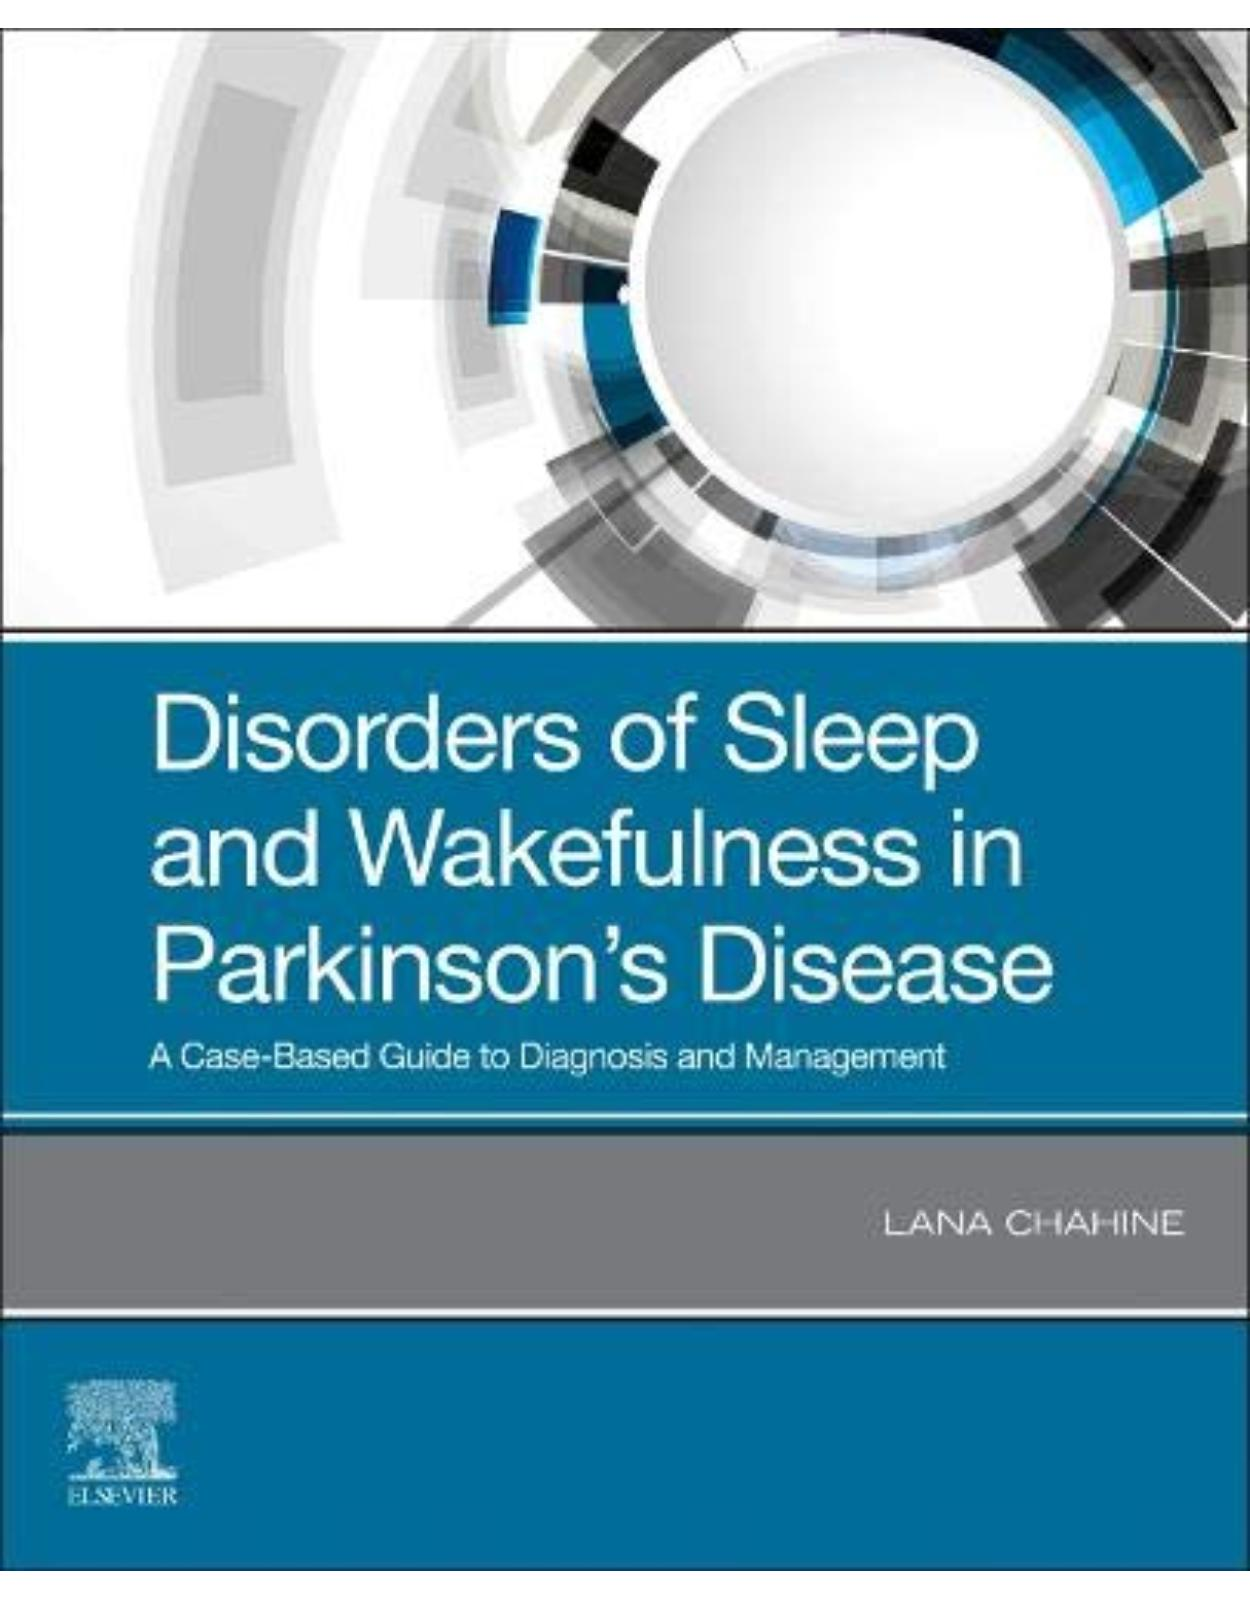 Disorders of Sleep and Wakefulness in Parkinson's Disease, A Case-Based Guide to Diagnosis and Management